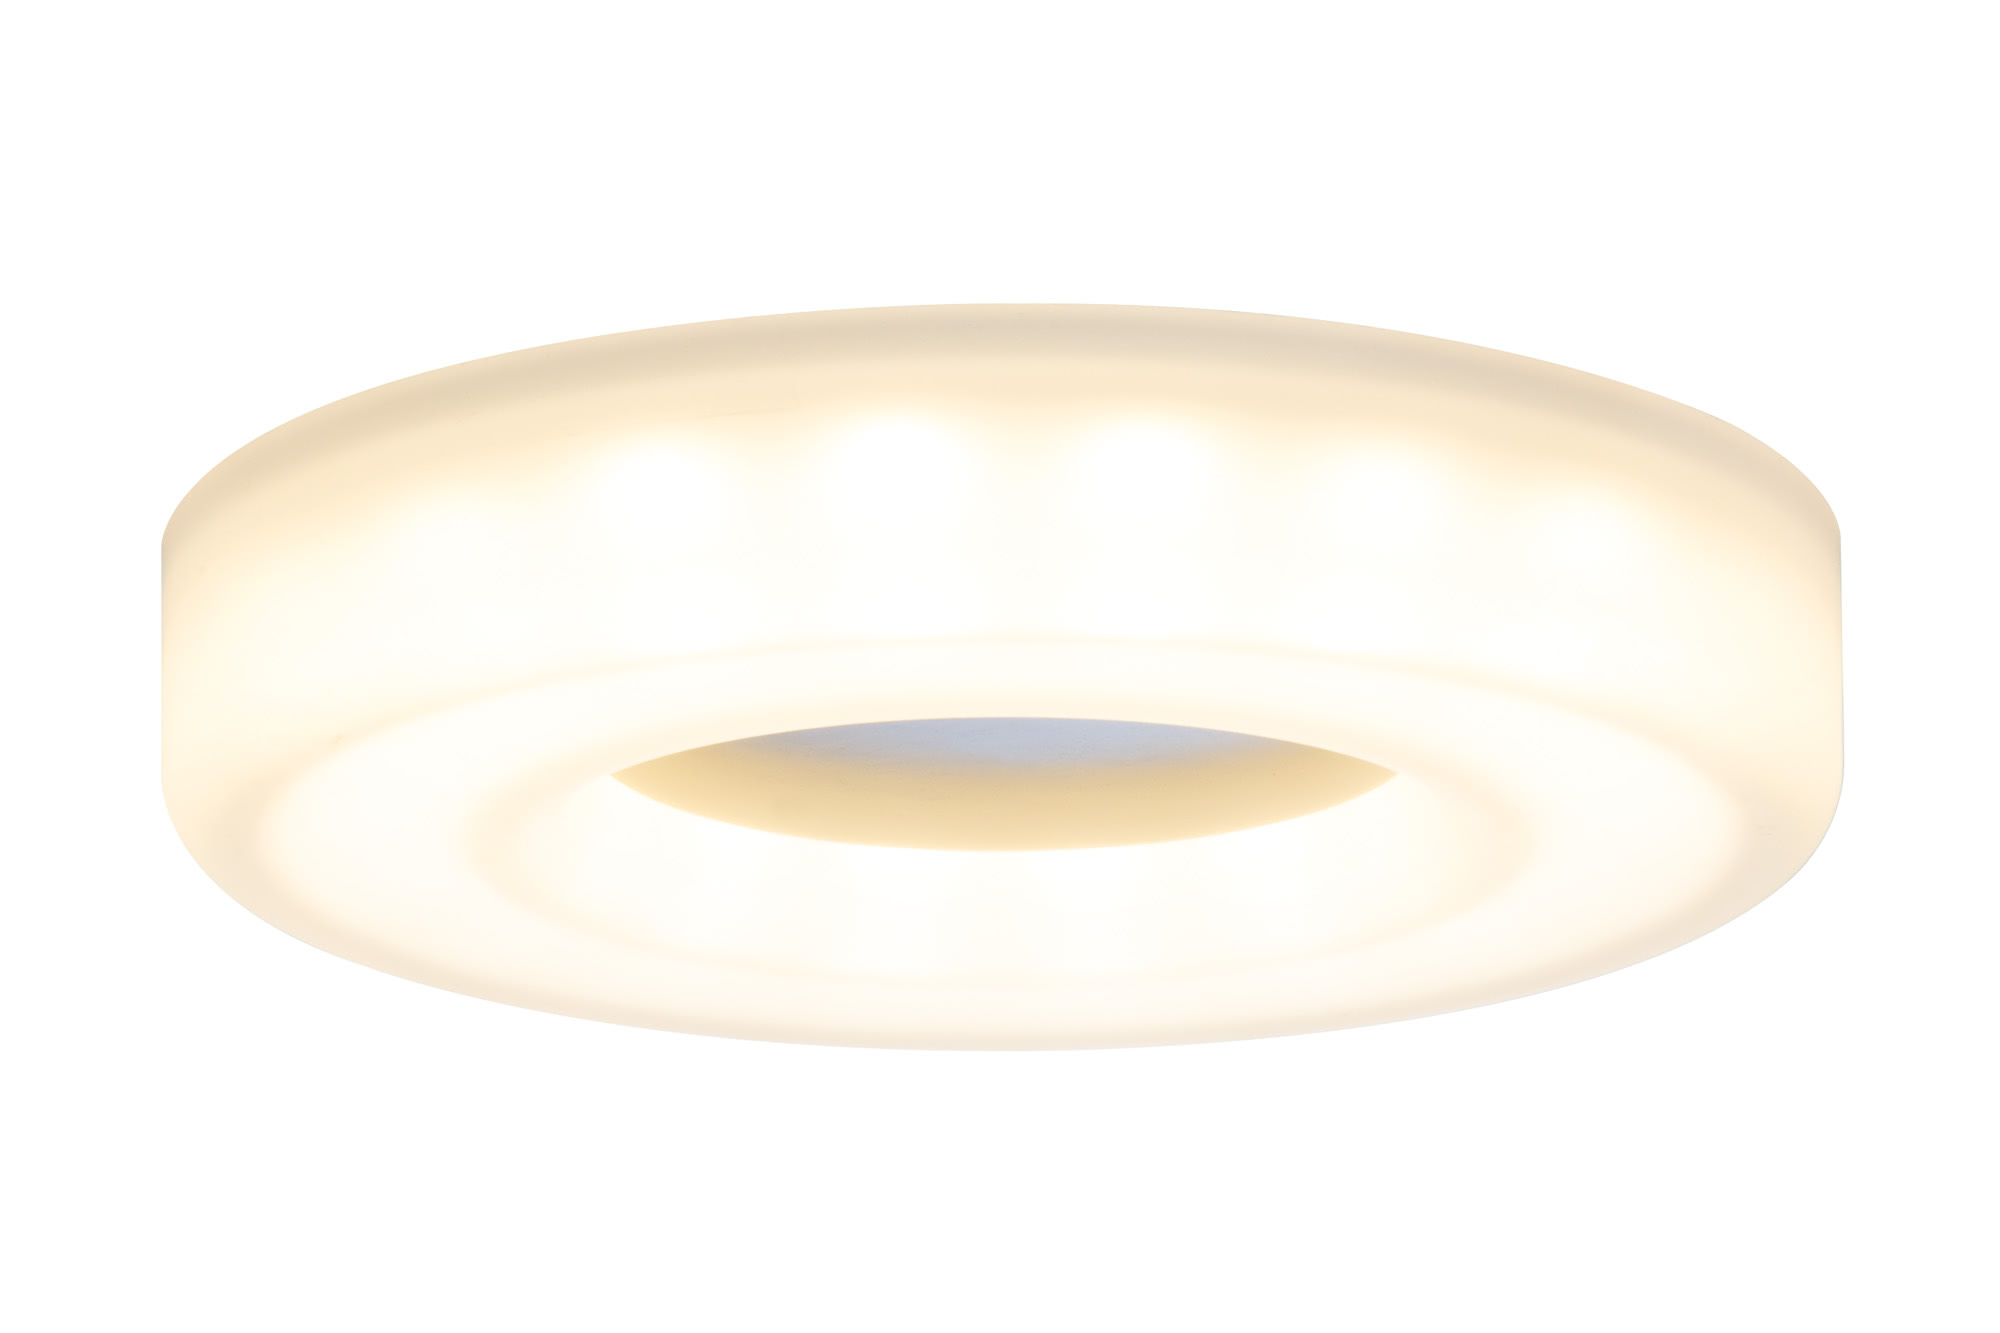 92704 Prem. EBL Set Bagel rund LED 3x6W Sat/Al Elegant material – high-quality finish. The LED recessed luminaires in the Premium Line offer efficient but homelike warm white LED light and meet the most stringent standards for material quality and design. The recessed lamp means that the light it emits is free of glare despite its excellent light output. 927.04 Premium line recessed light set, Bagel LED Satin, aluminium, rigid, 3-pc. set Paulmann